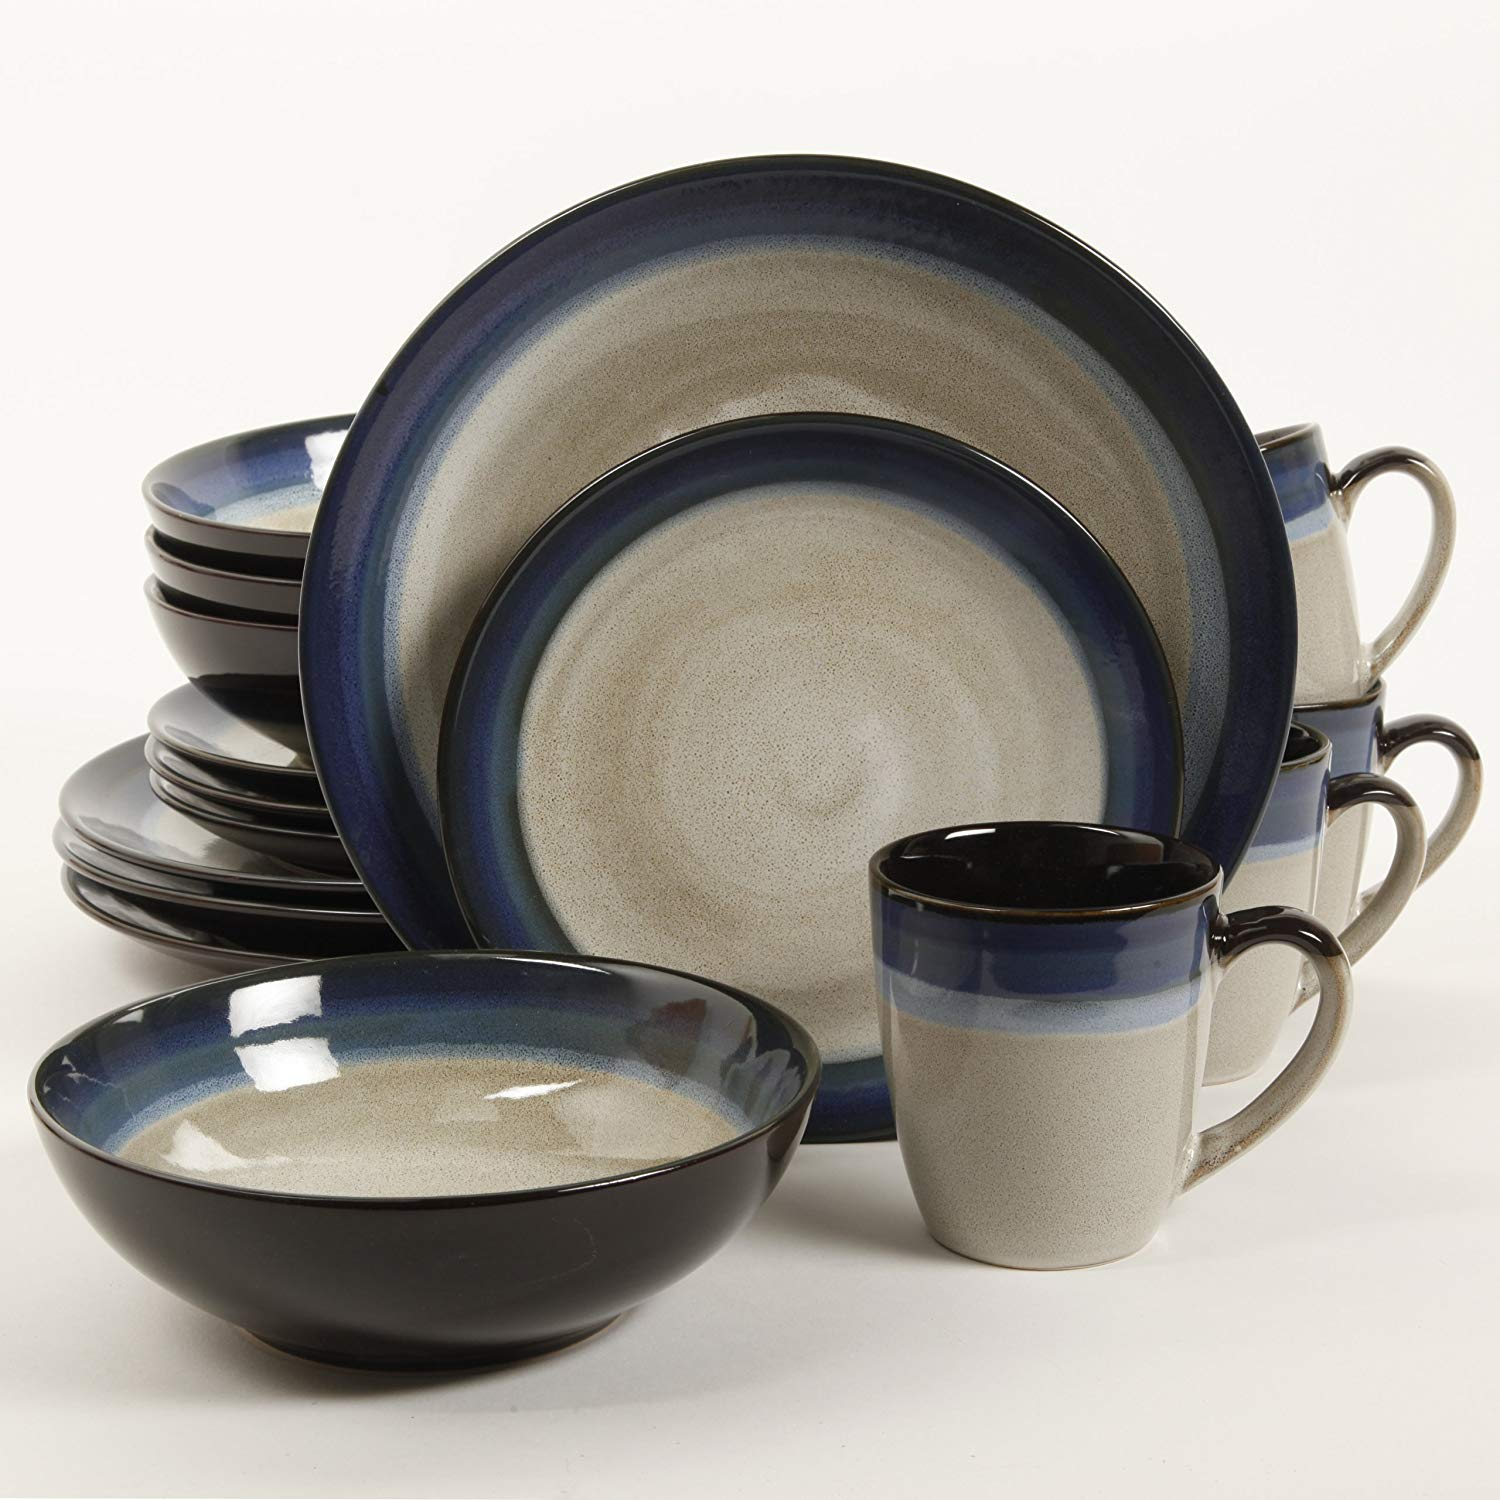 Gibson Couture dinnerware set